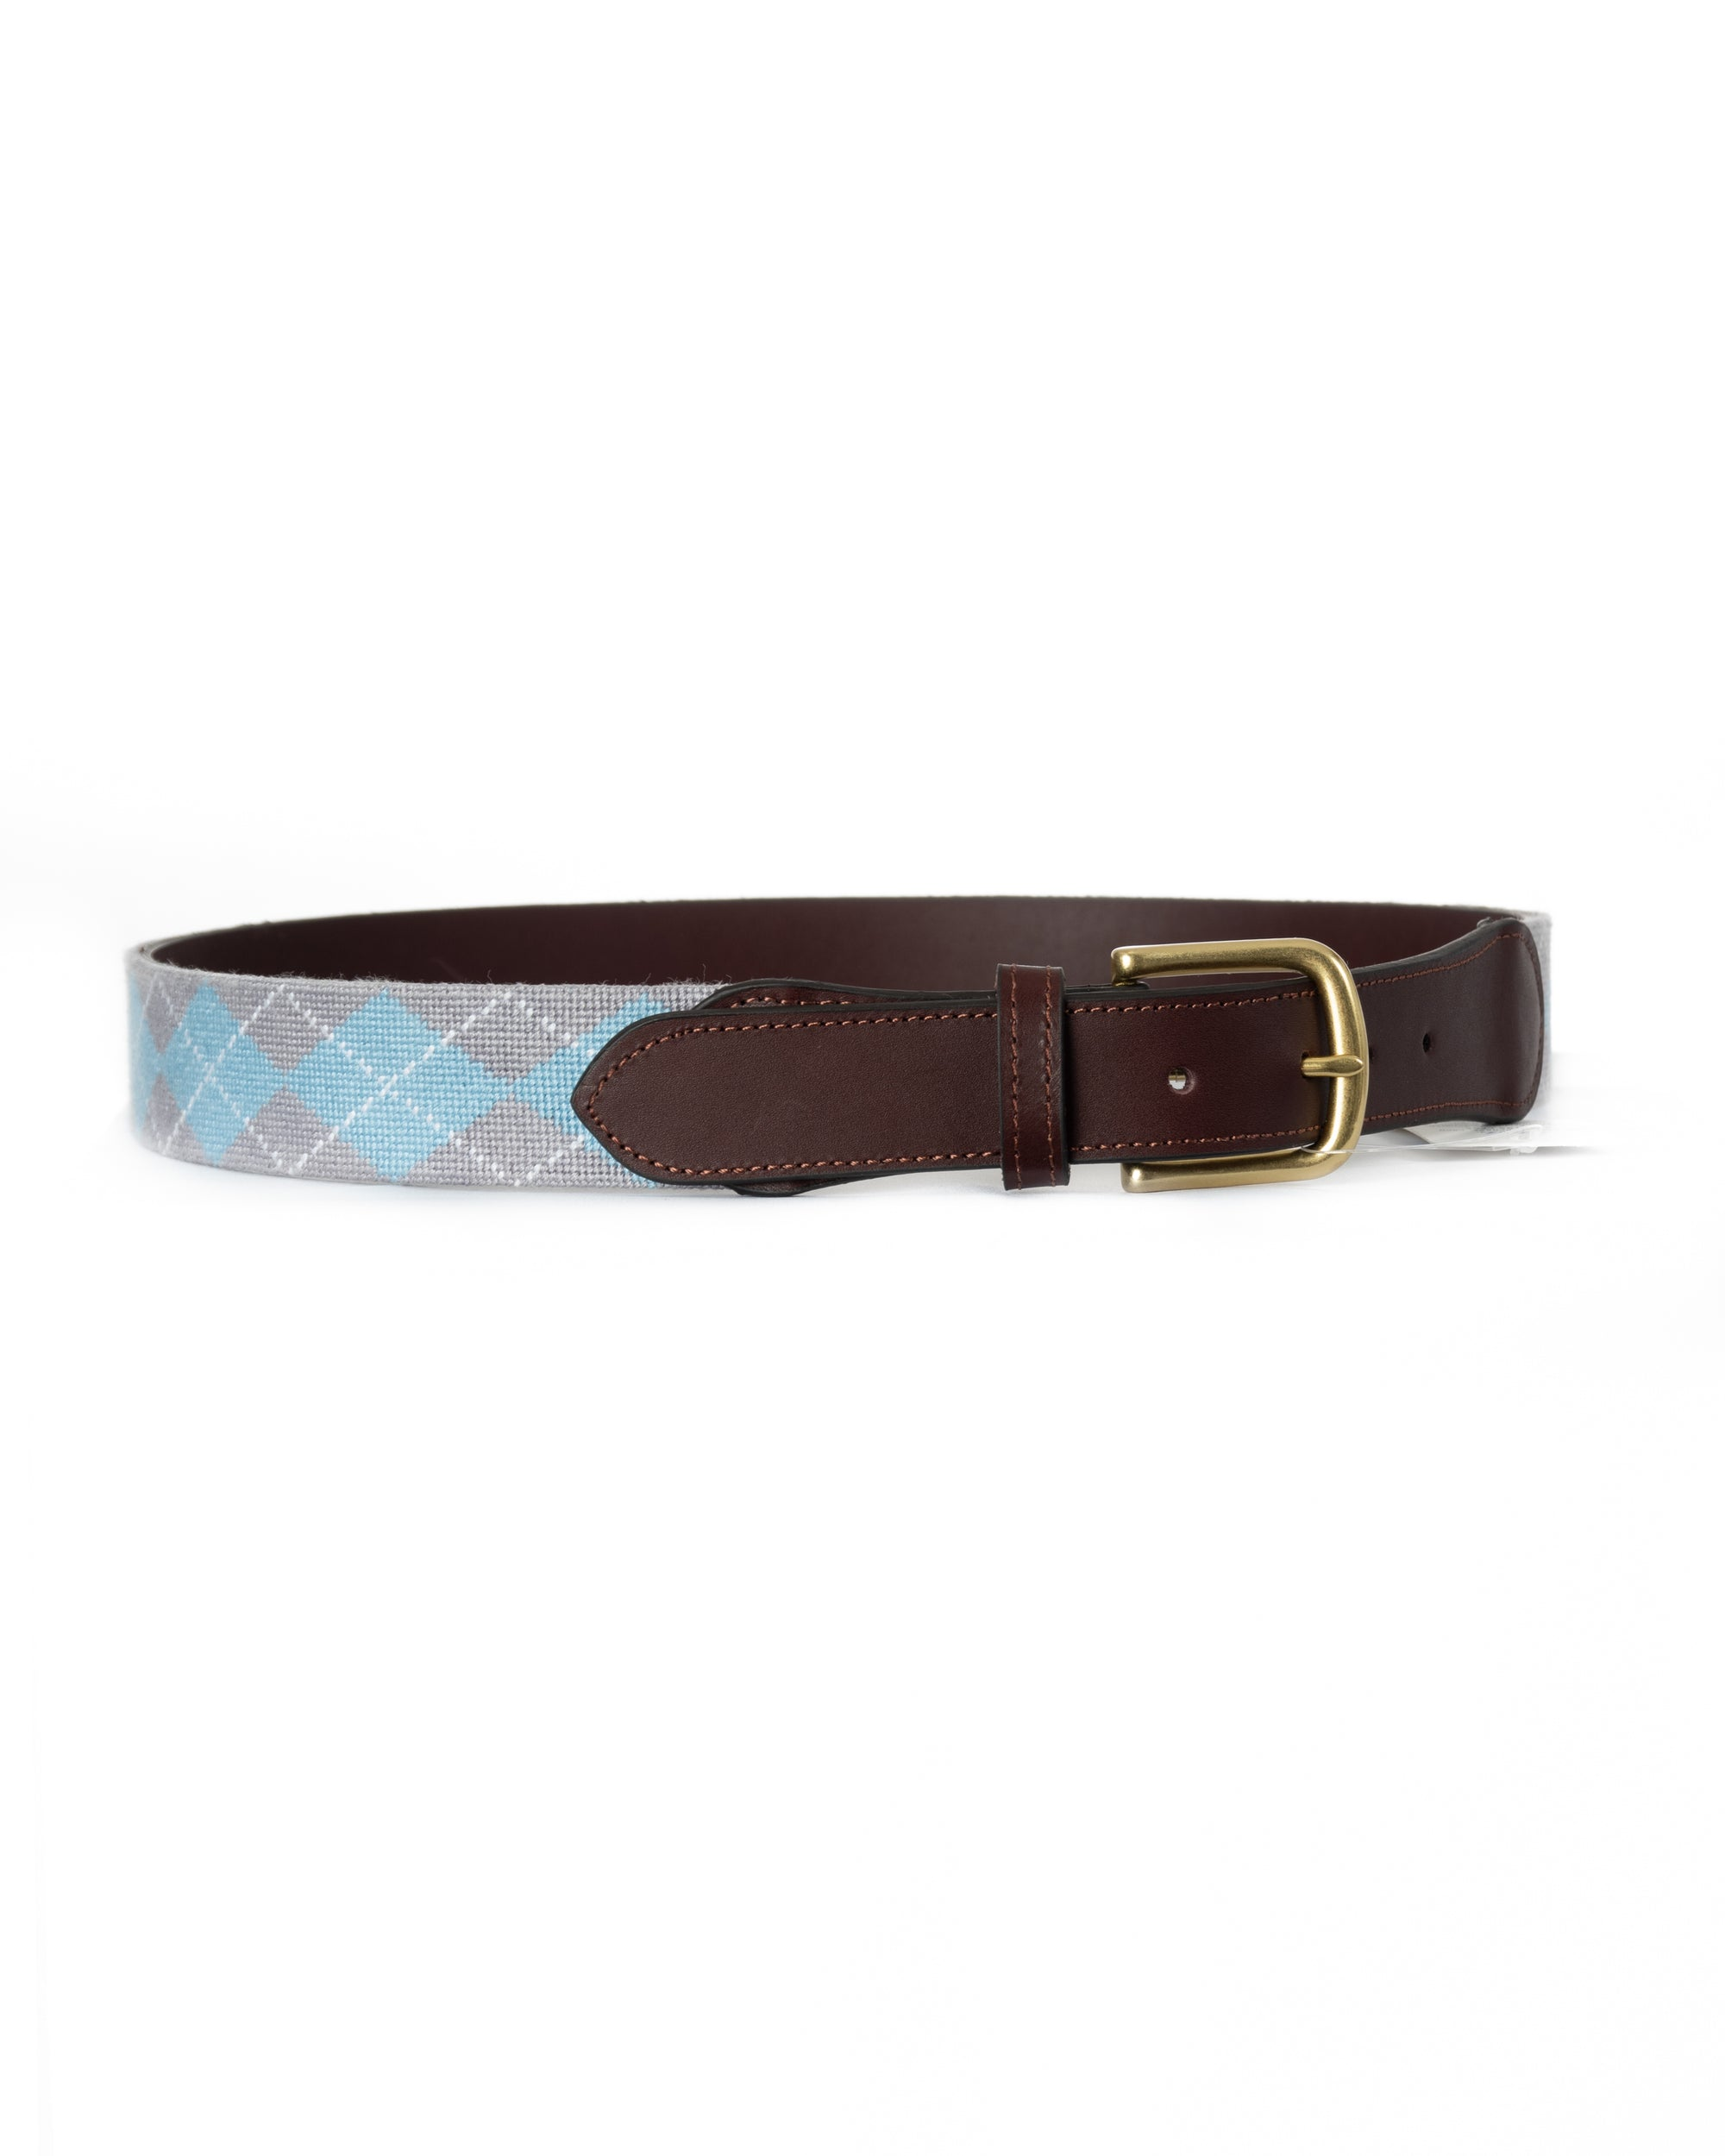 Handmade Argyle Needlepoint Belt